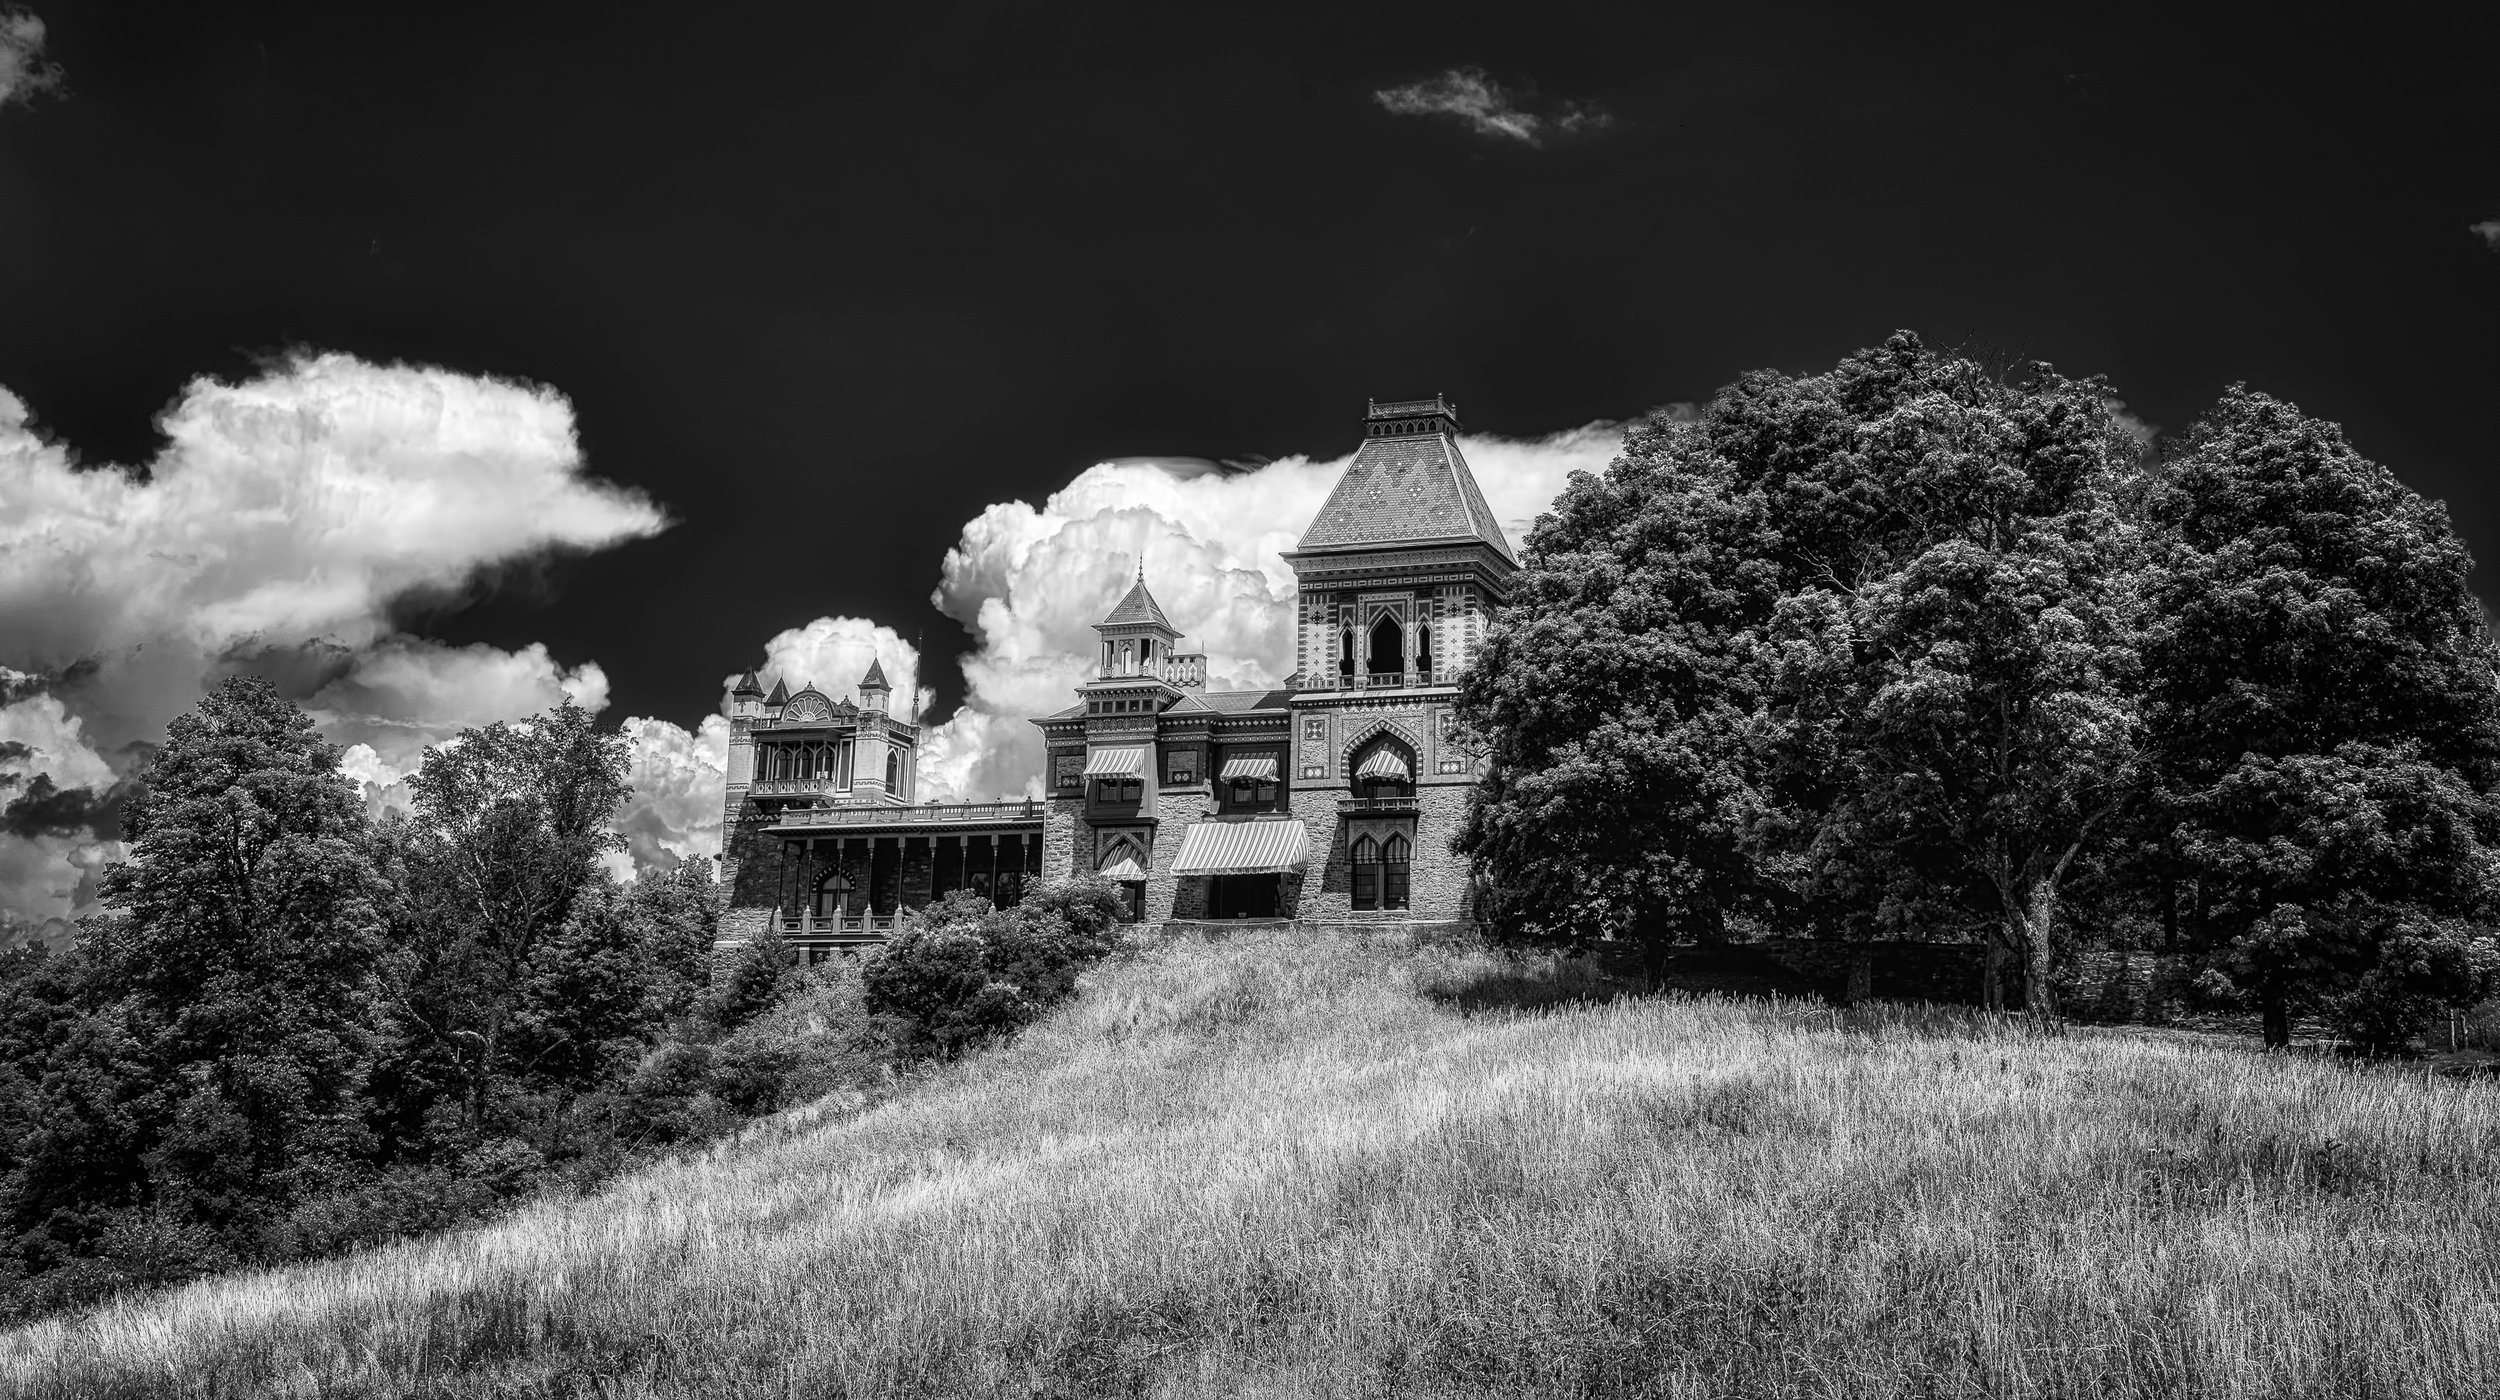 Summer at Olana - Nikon D750, 1/200 @ f/13, ISO 100, 42mm. The home of Frederic Church, one of the foremost painters of the Hudson River School. I have shot here many times but this is the first black and white that works for me. Nice puffy clouds and an unobstructed view from a lower elevation, adds to the majesty of the home. I added a red filter in post to increase the contrast between the clouds and the sky.